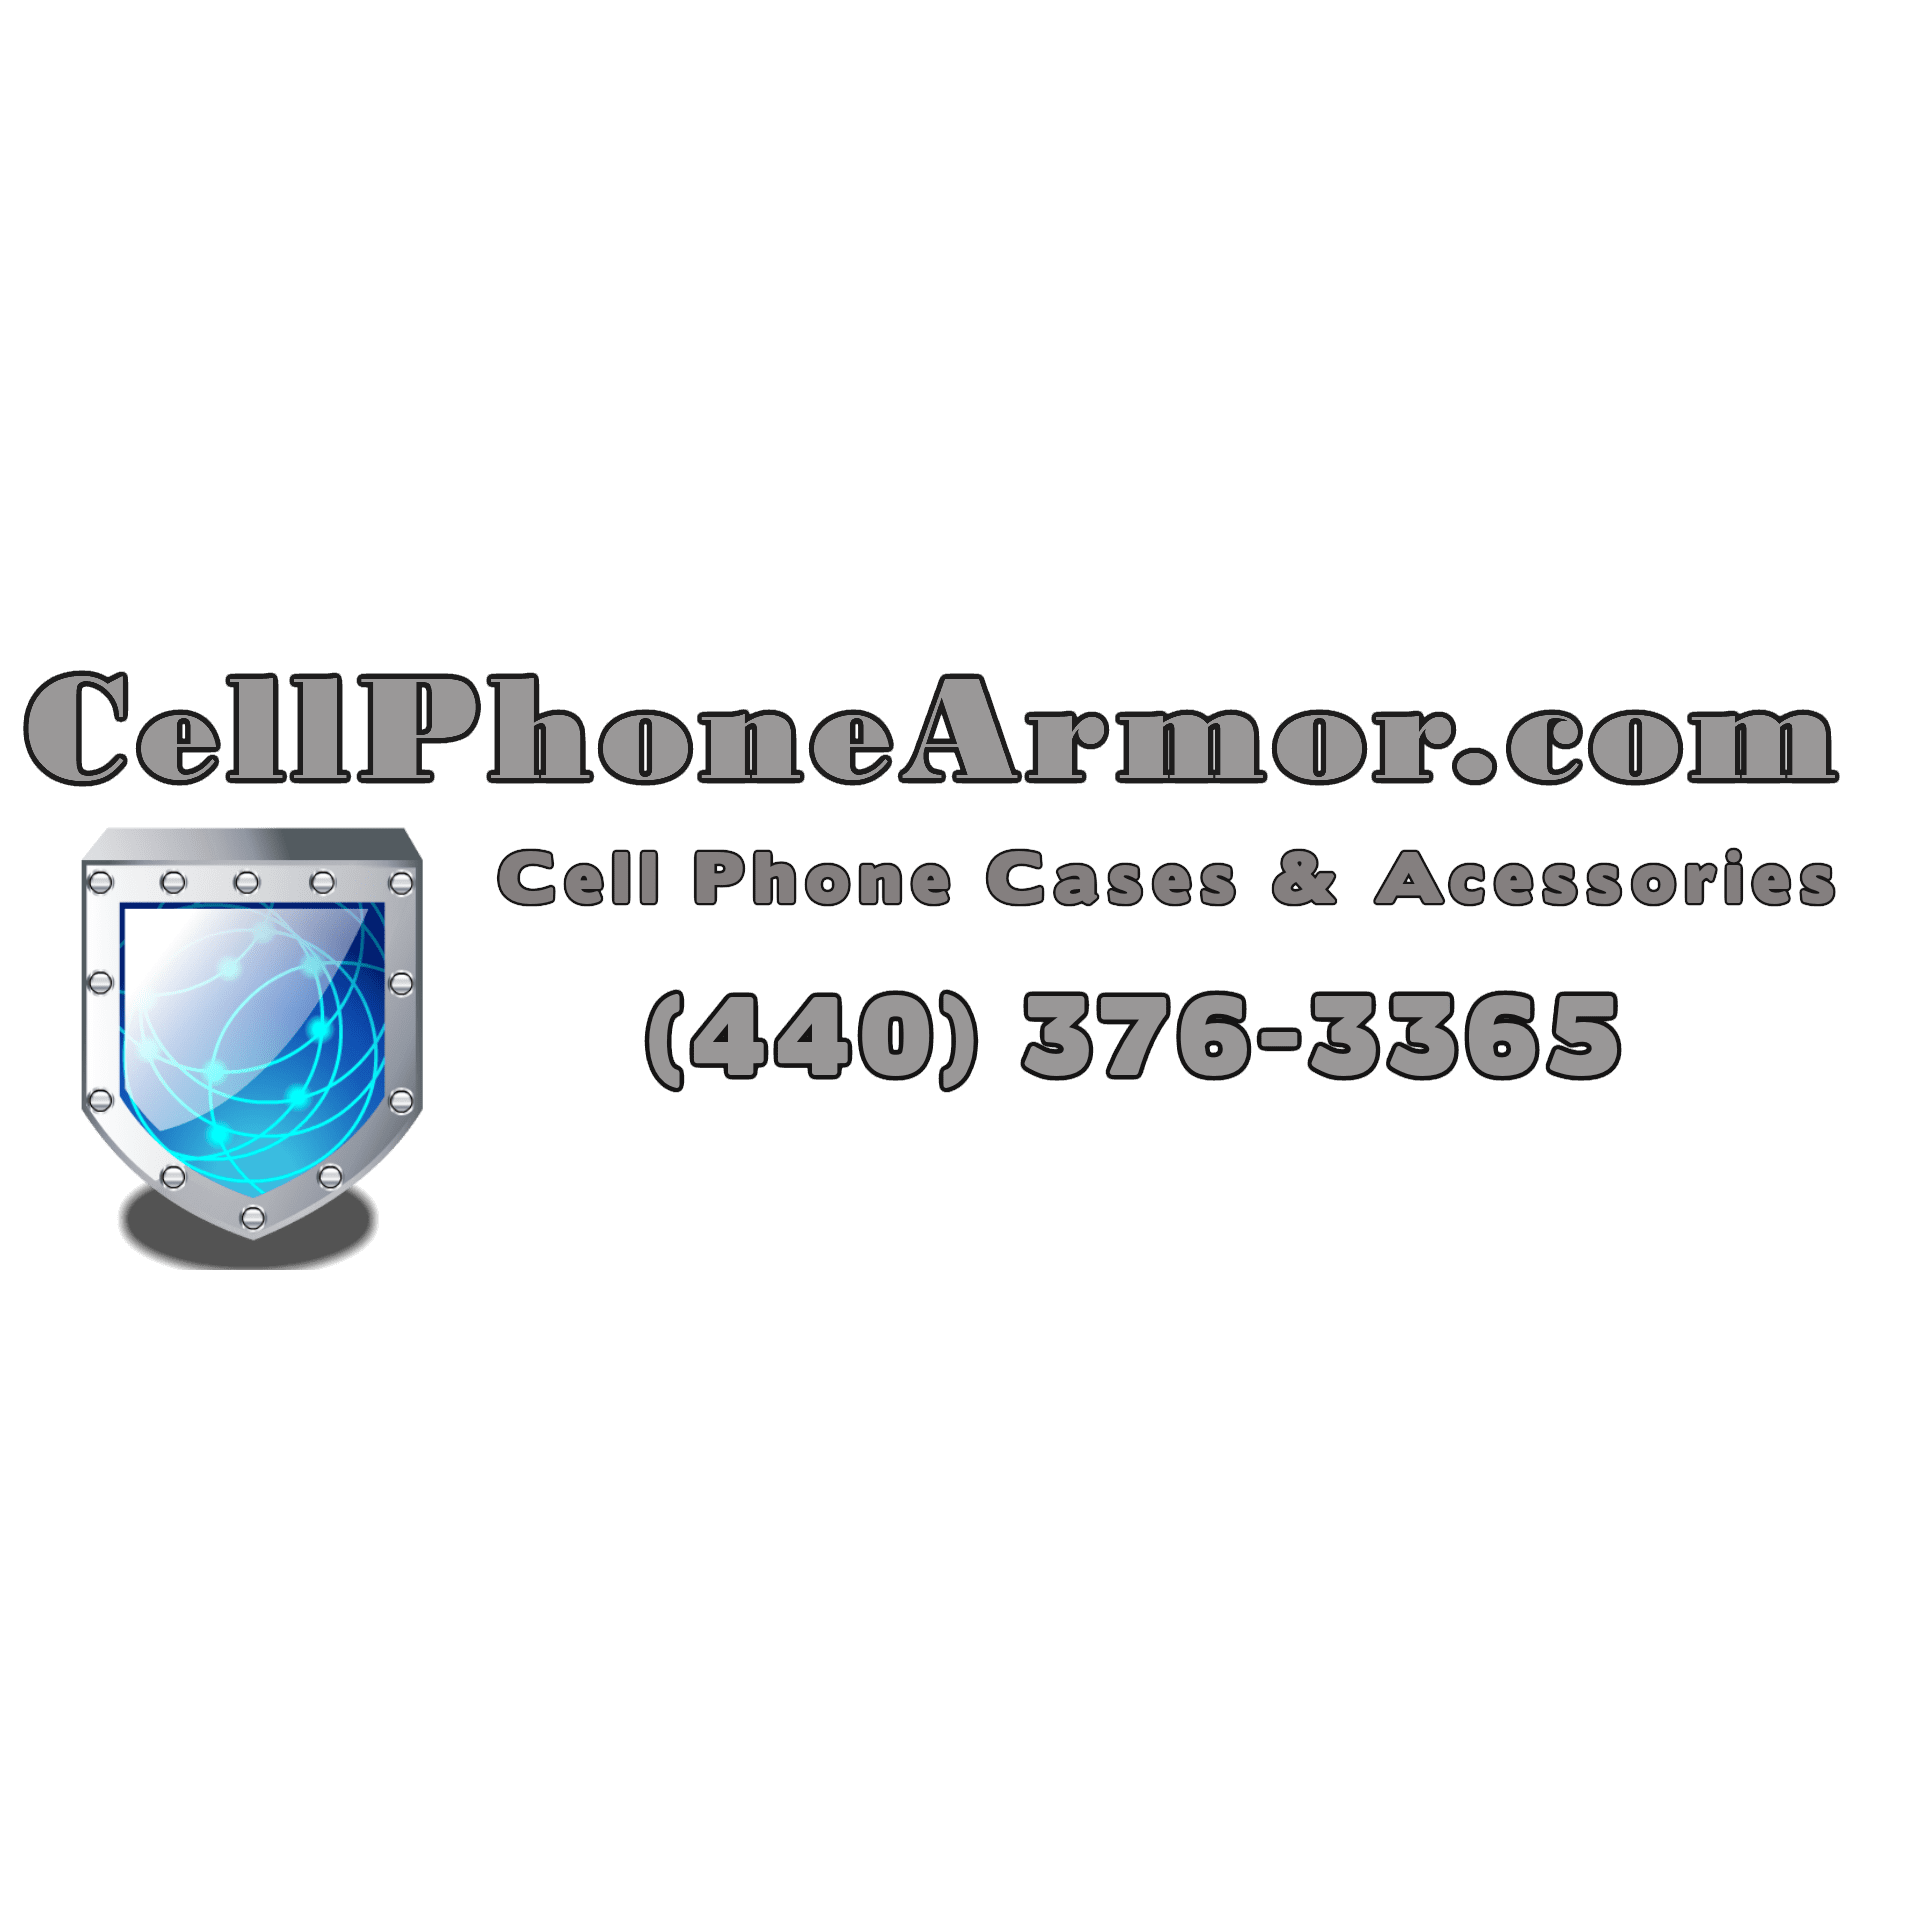 Cell Phone Armor.com